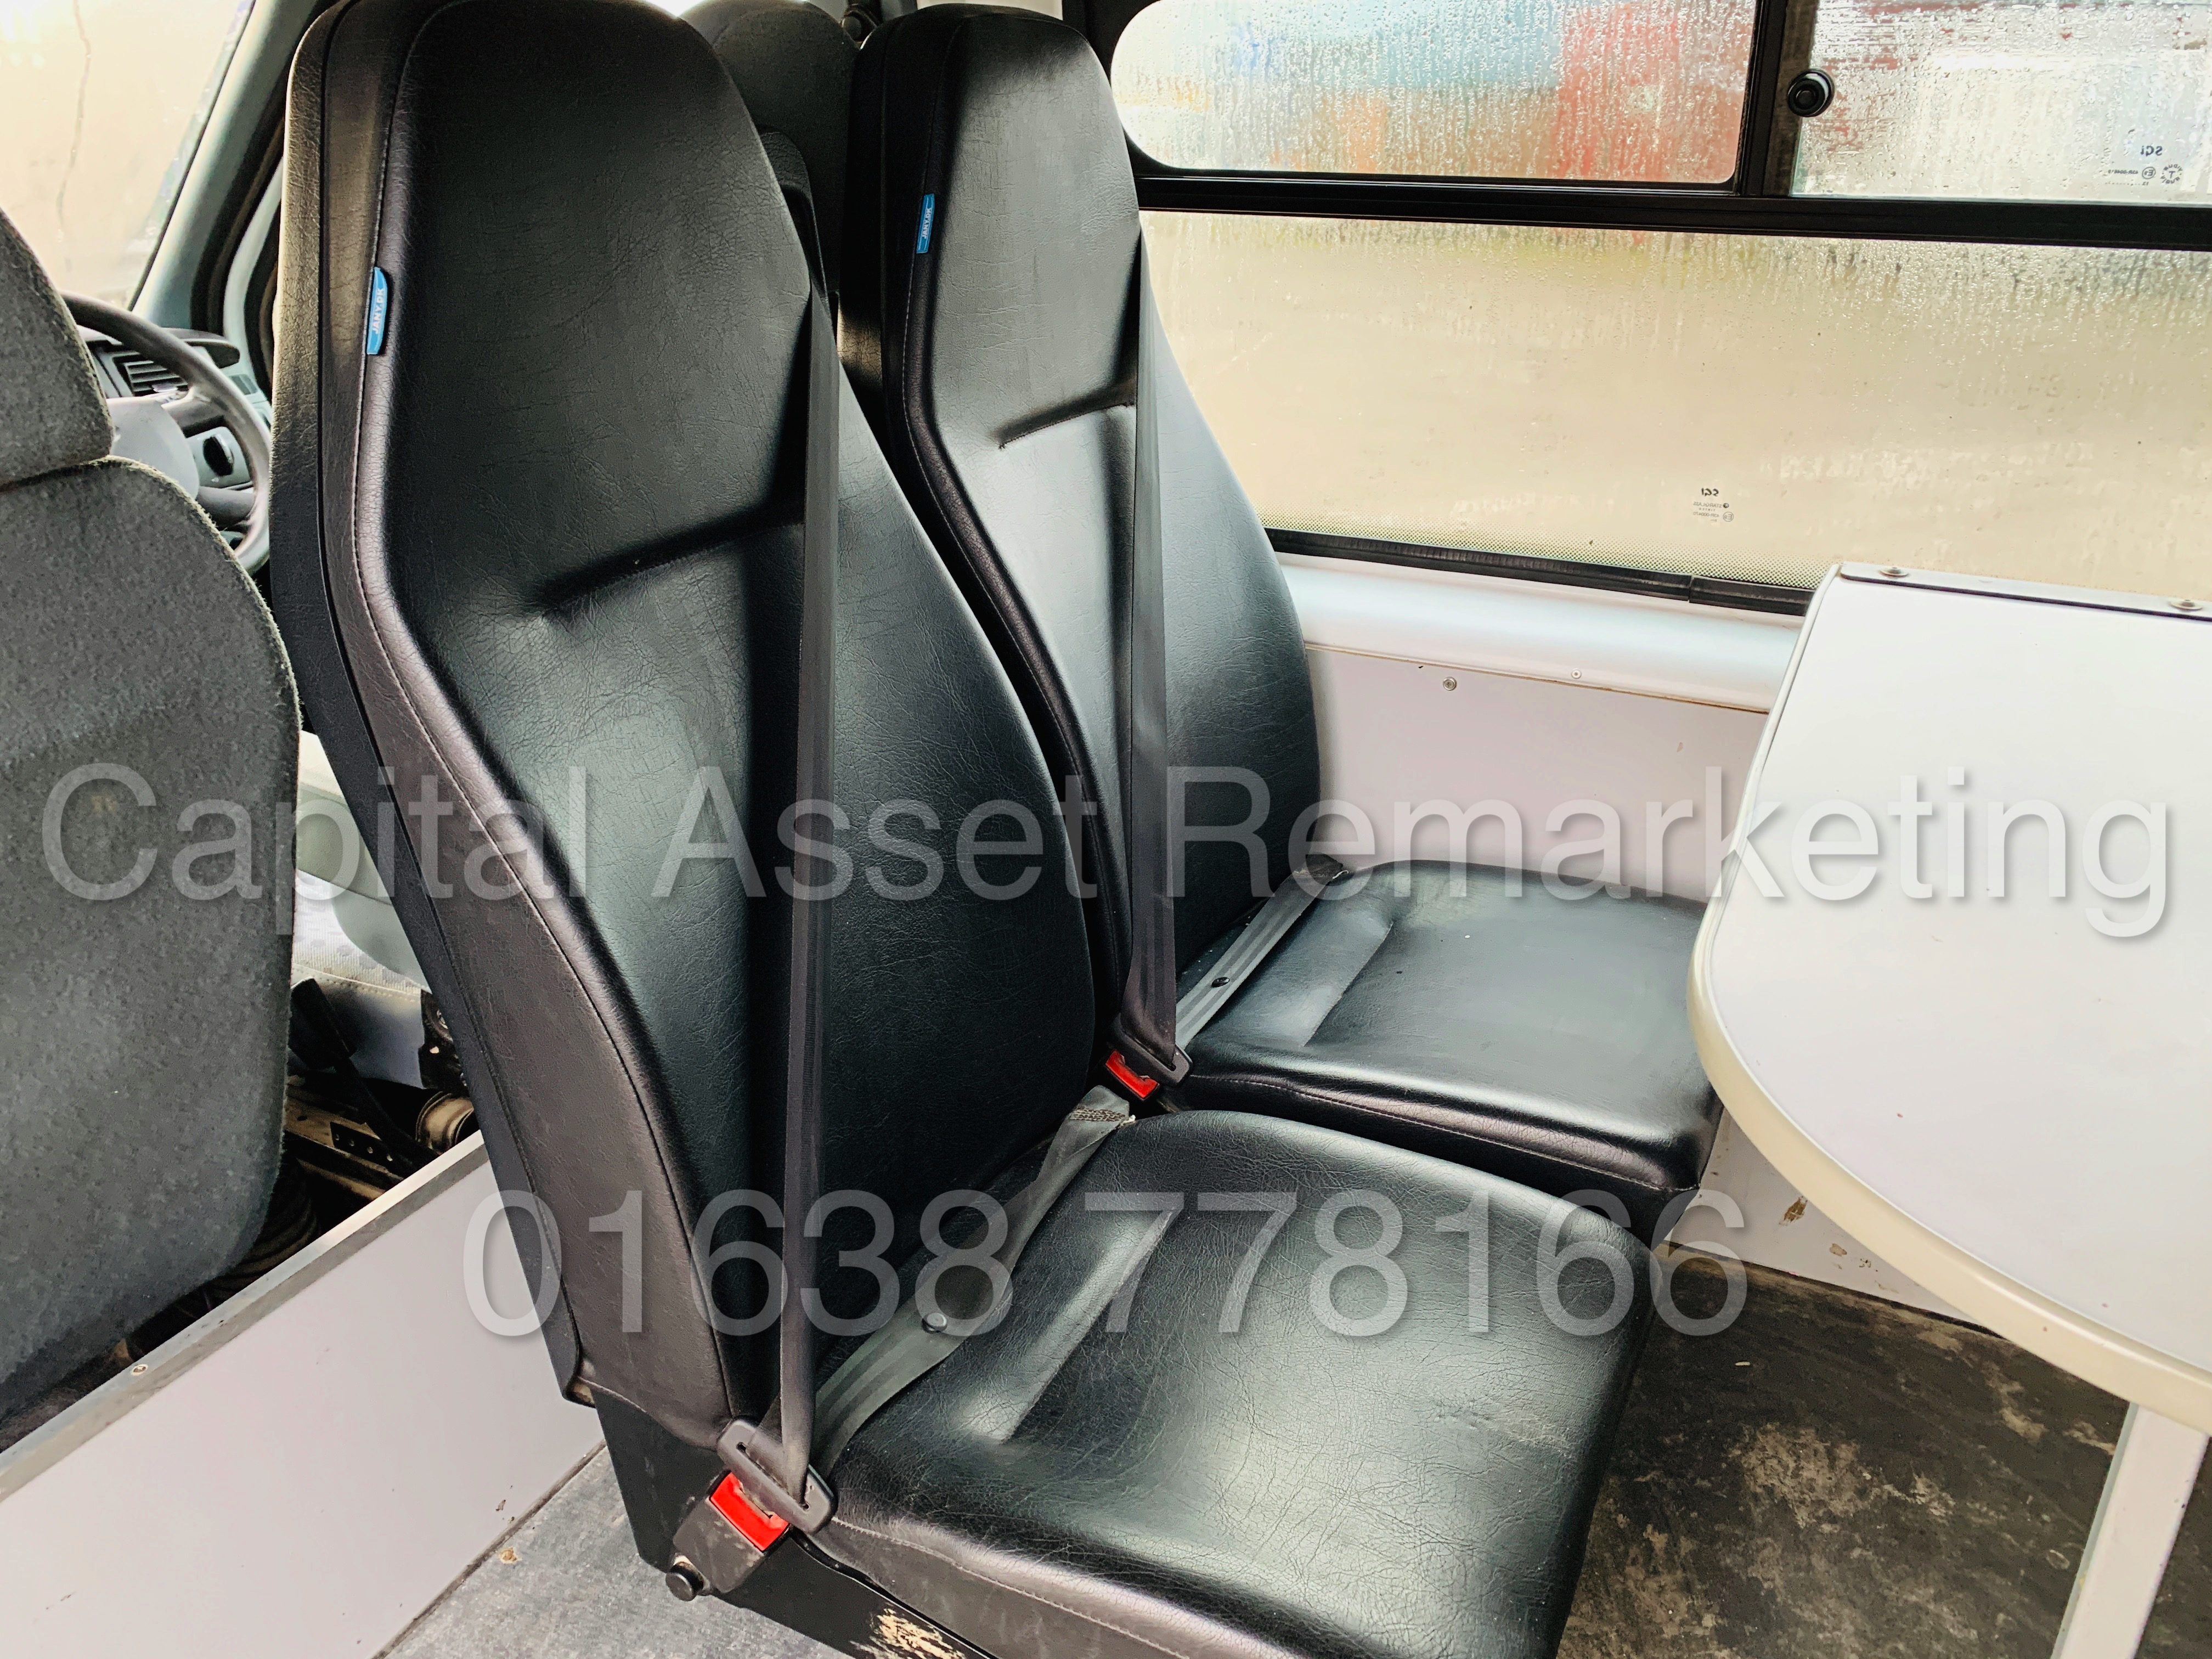 FORD TRANSIT T350 *LWB - 7 SEATER MESSING UNIT* (2014 MODEL) '2.4 TDCI - 6 SPEED' *ON BOARD TOILET* - Image 22 of 44